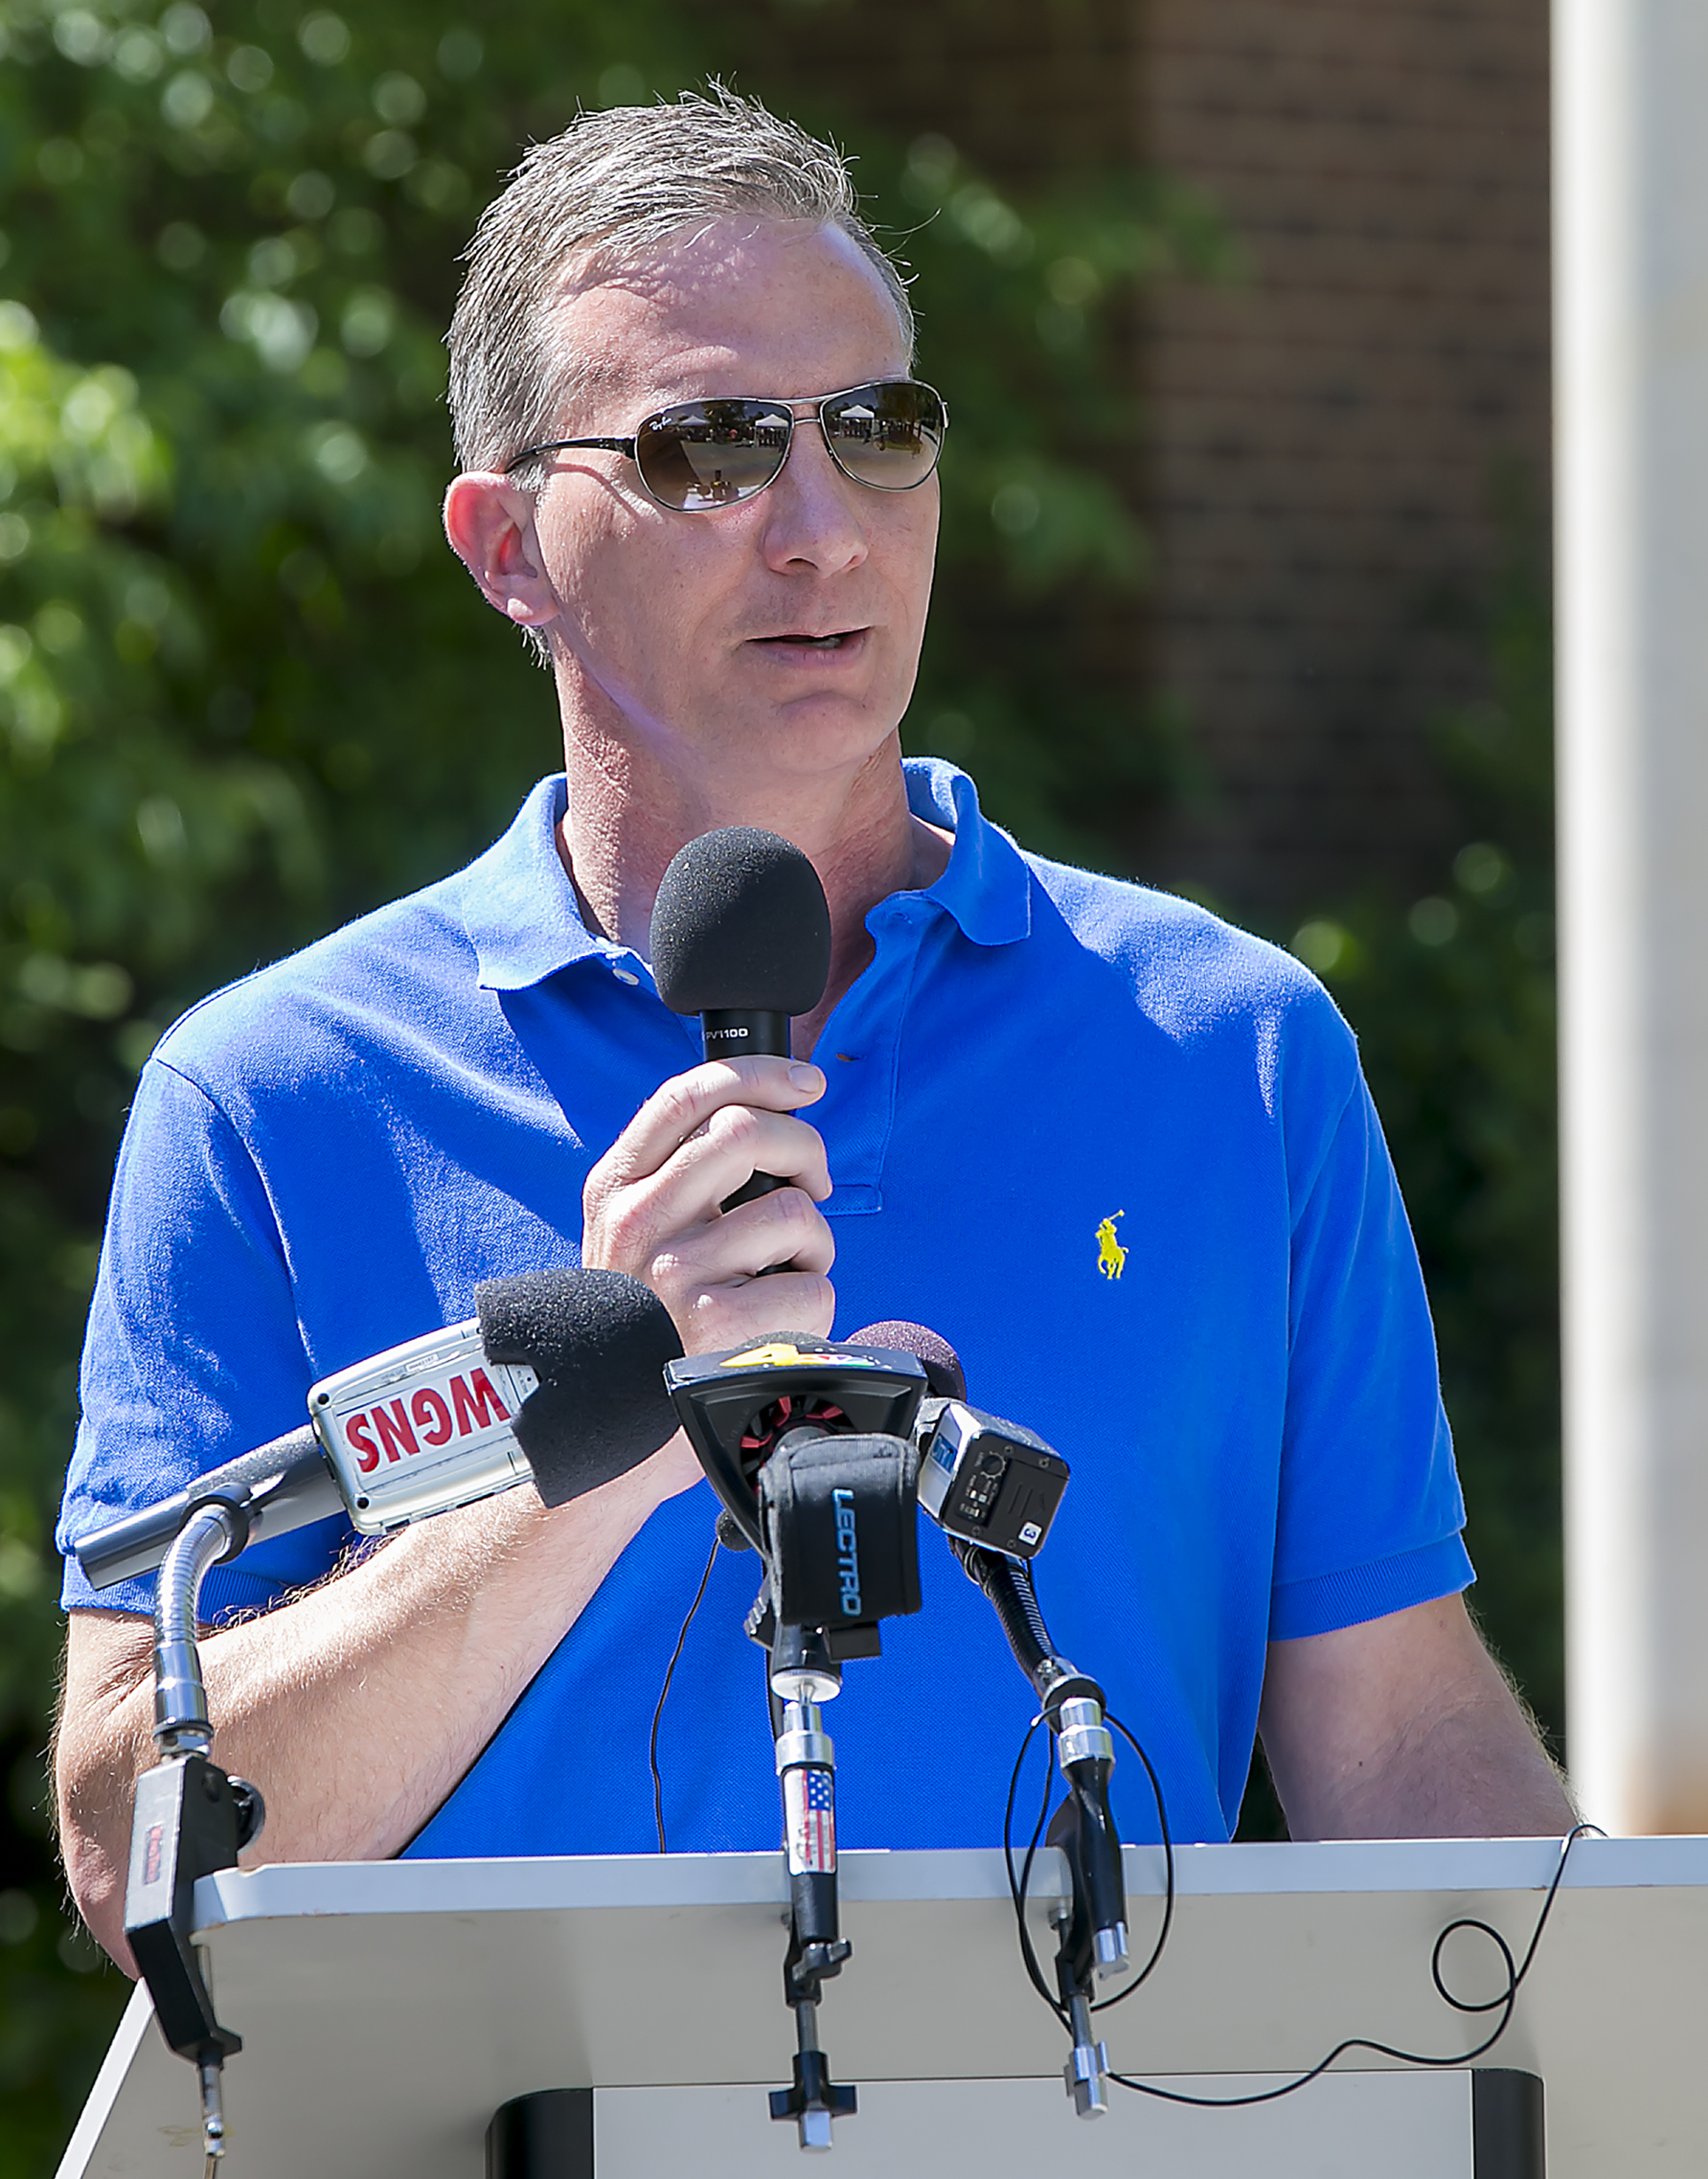 More details on December 2017 resignation of Murfreesboro City Manager  | Rob Lyons,resign,city manager,Murfreesboro manager